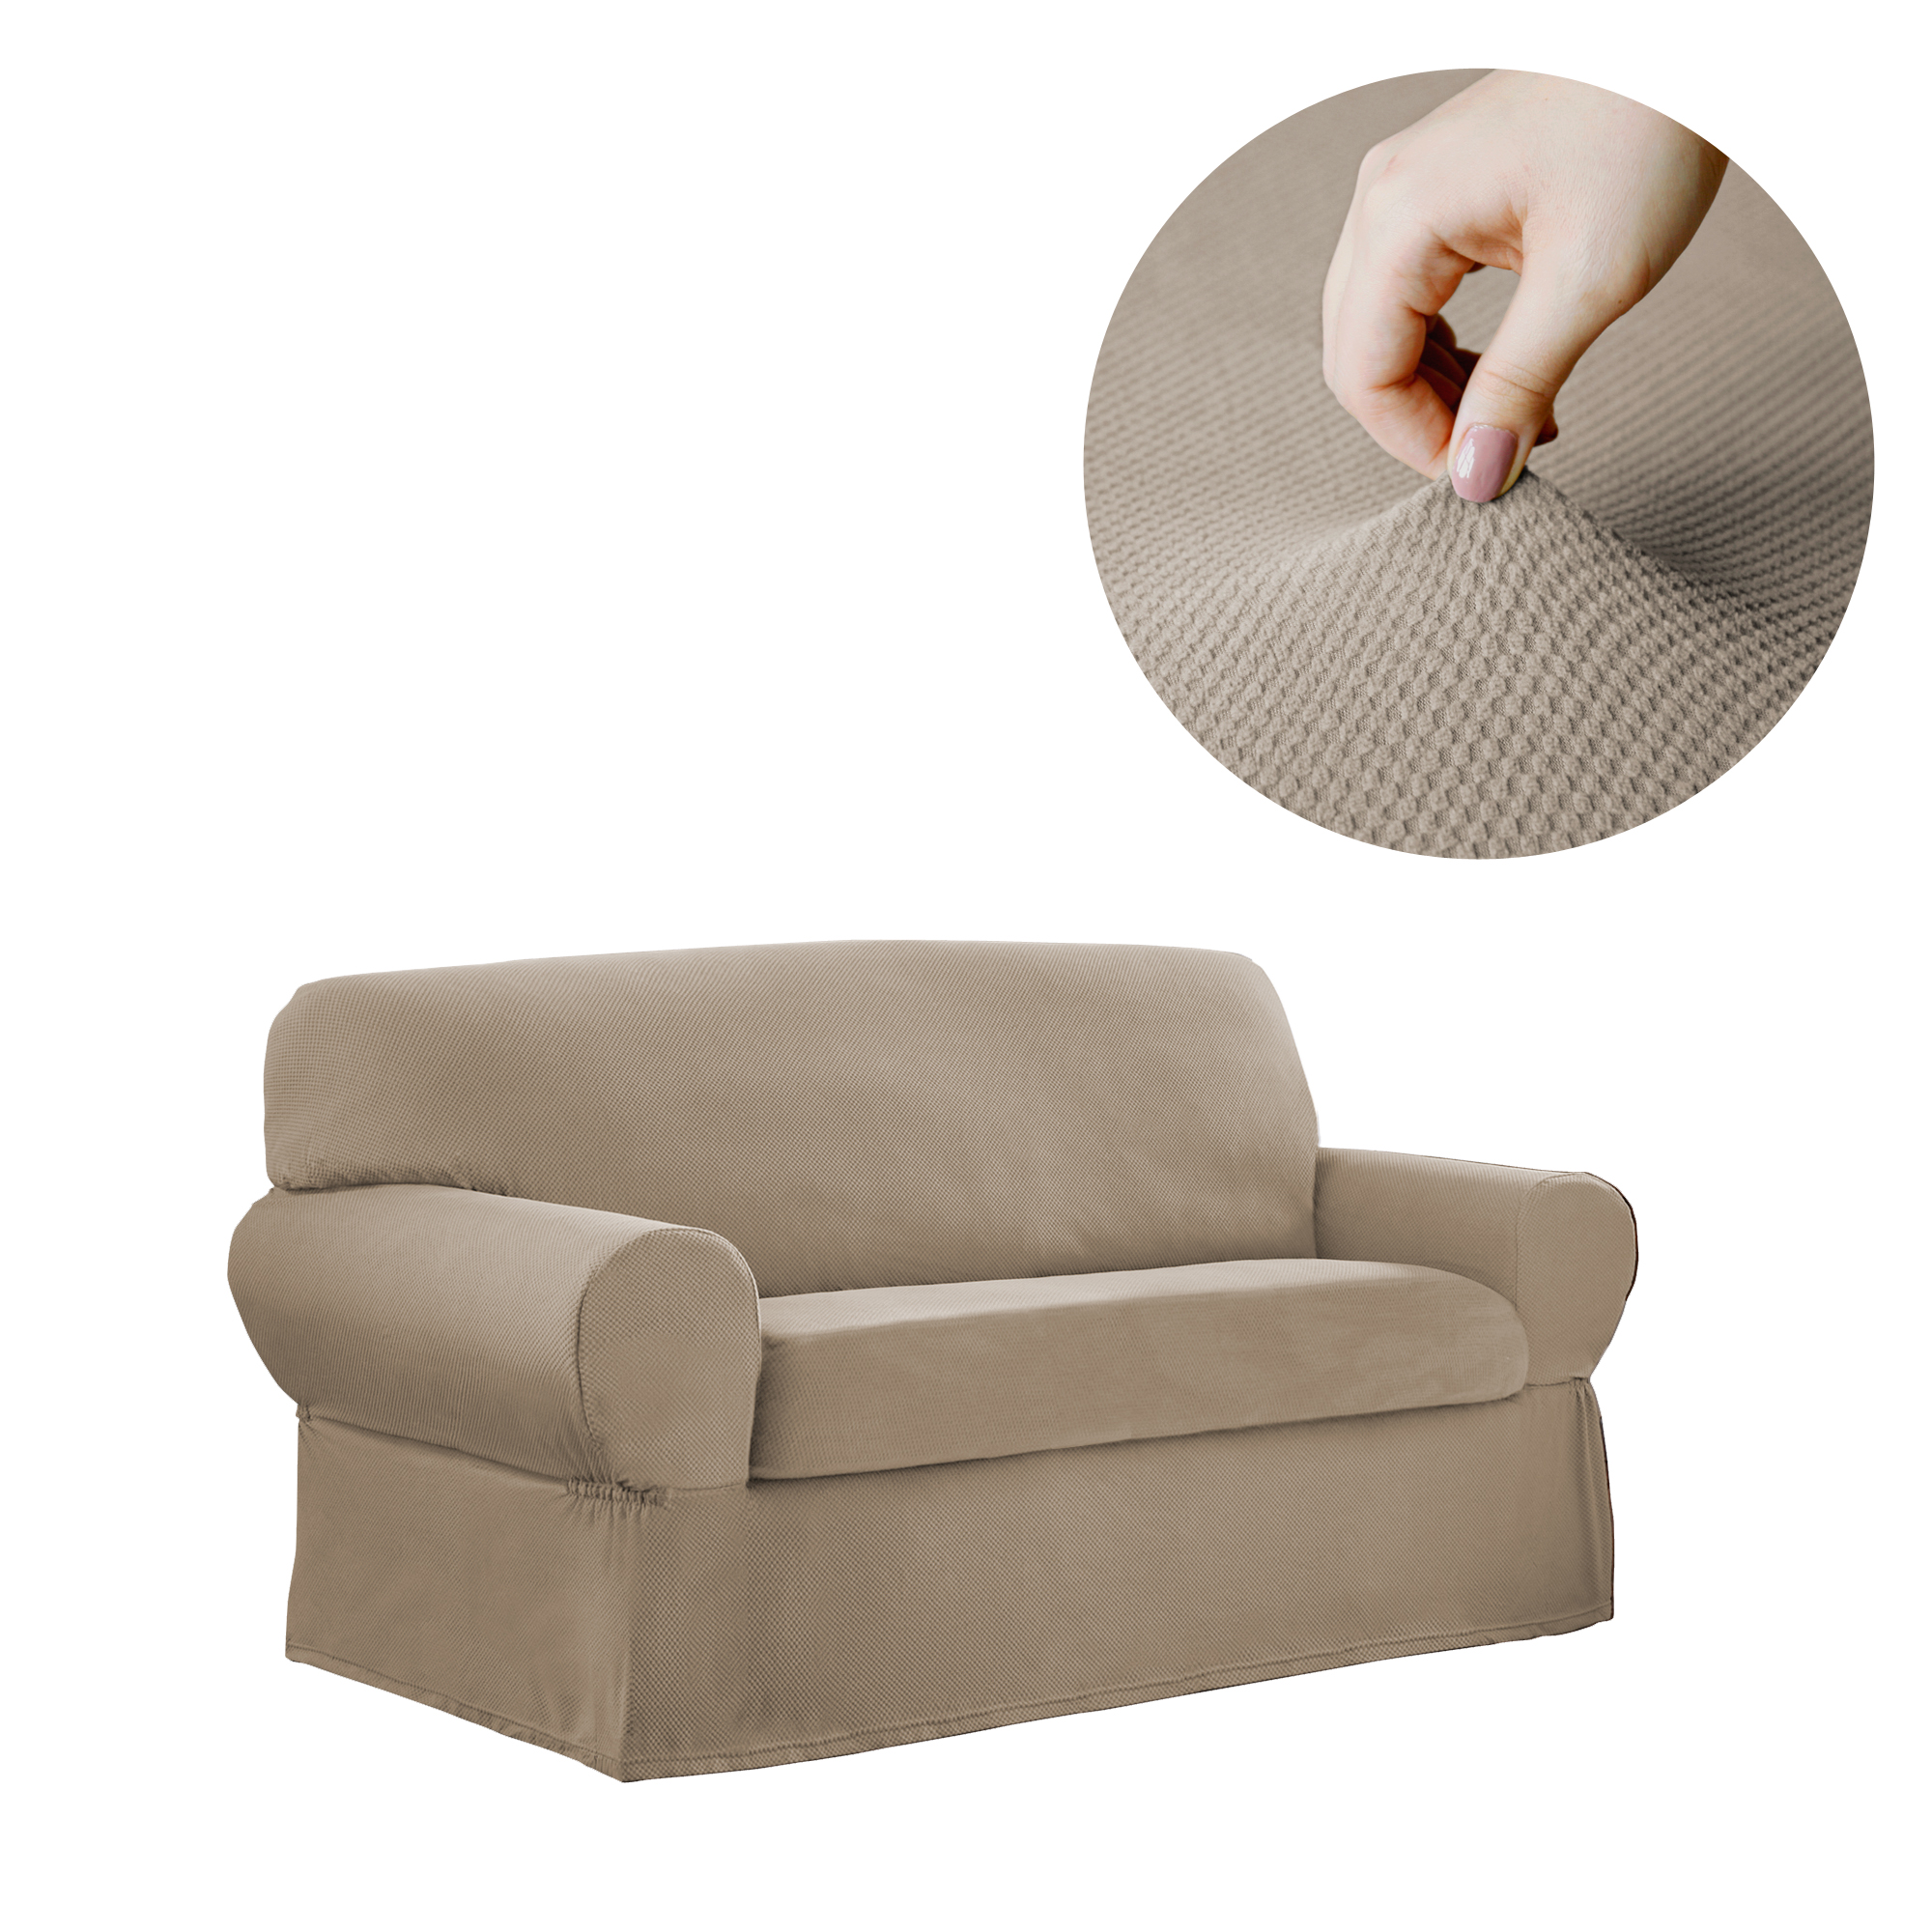 Mainstays Stretch Pixel 2 Piece Loveseat Furniture Cover Slipcover